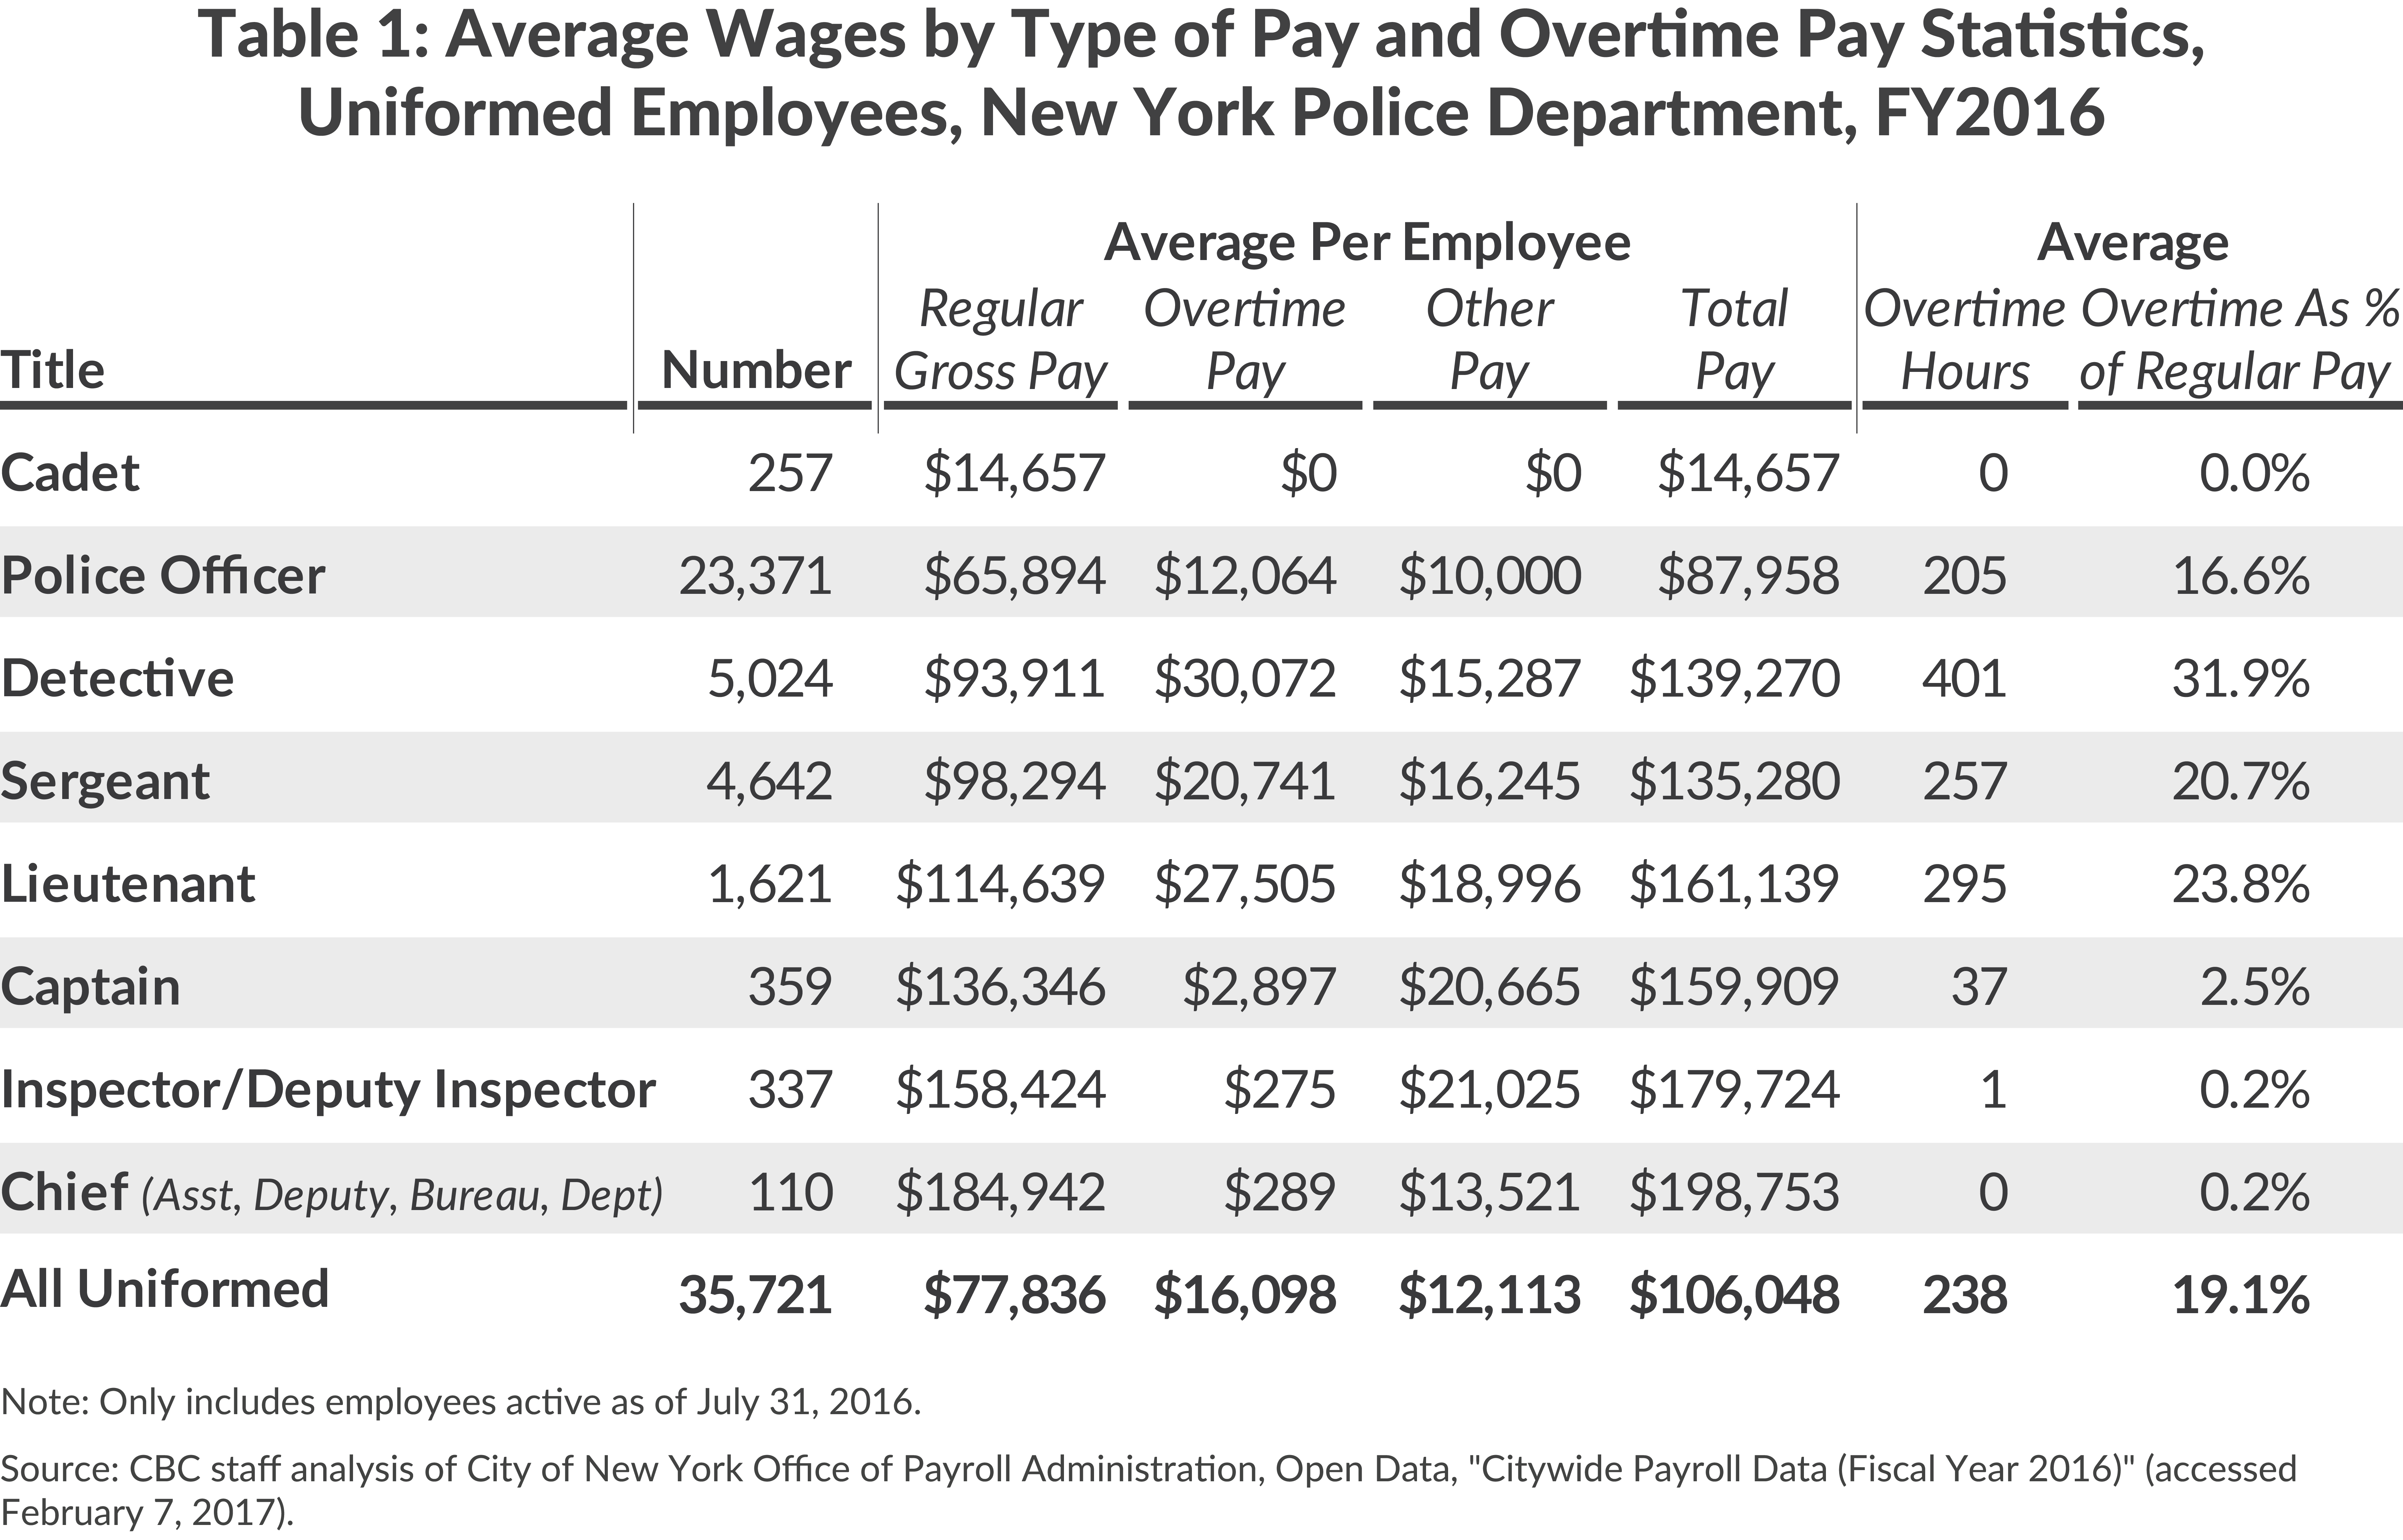 Average Wages and Overtime, NYPD, FY2016